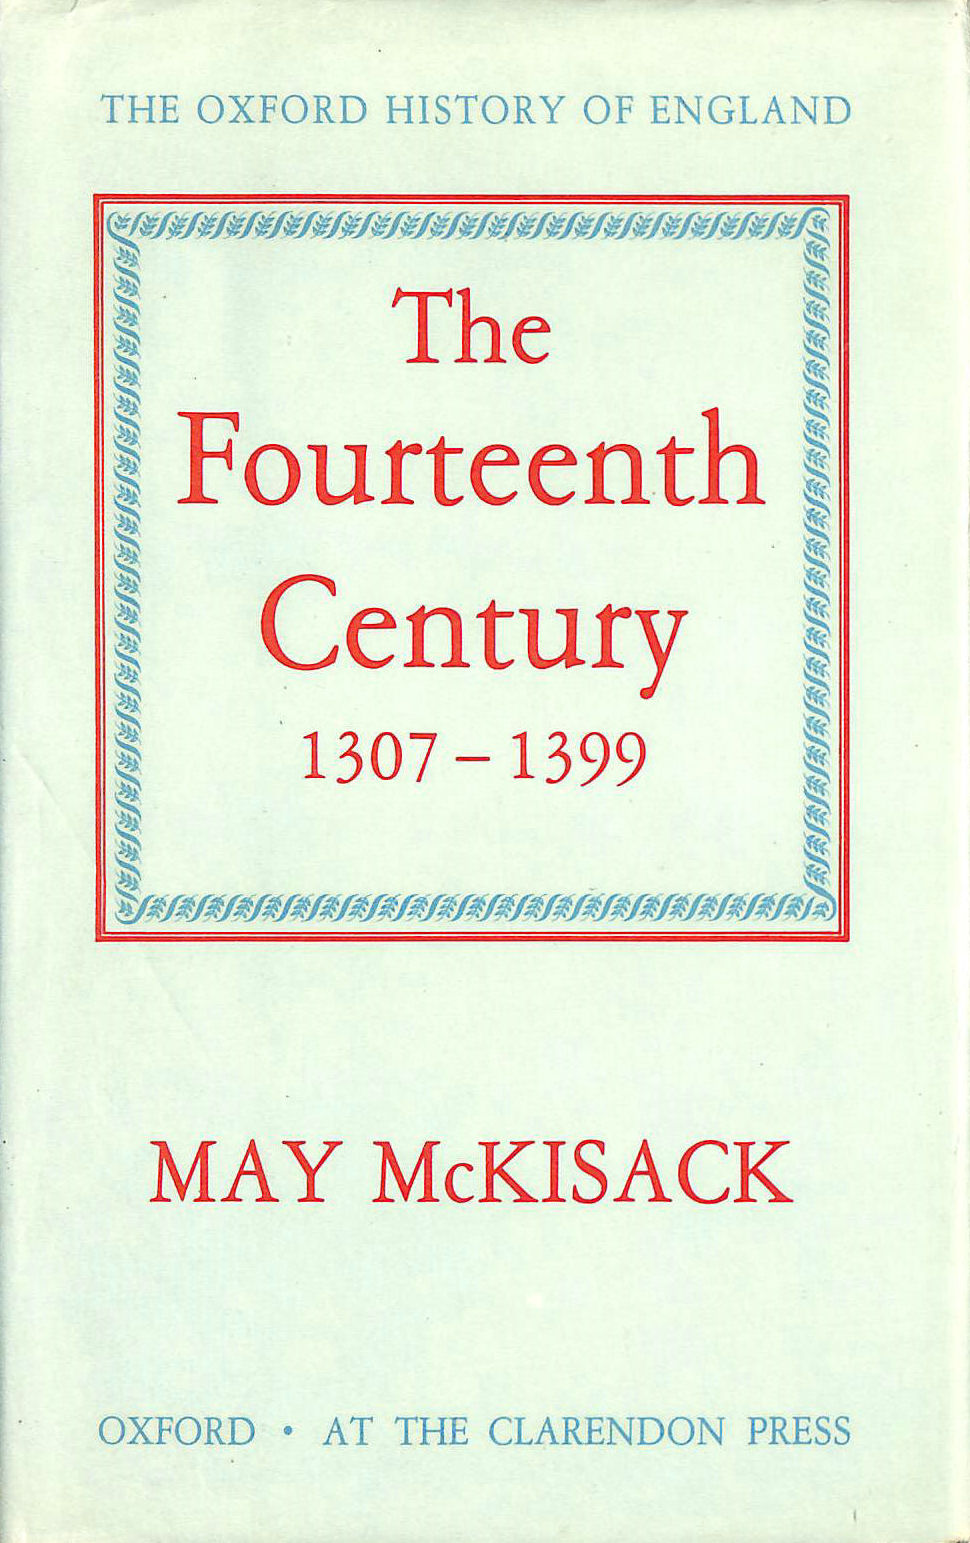 MCKISACK, MAY - The Fourteenth Century 1307-1399 (Oxford History of England)